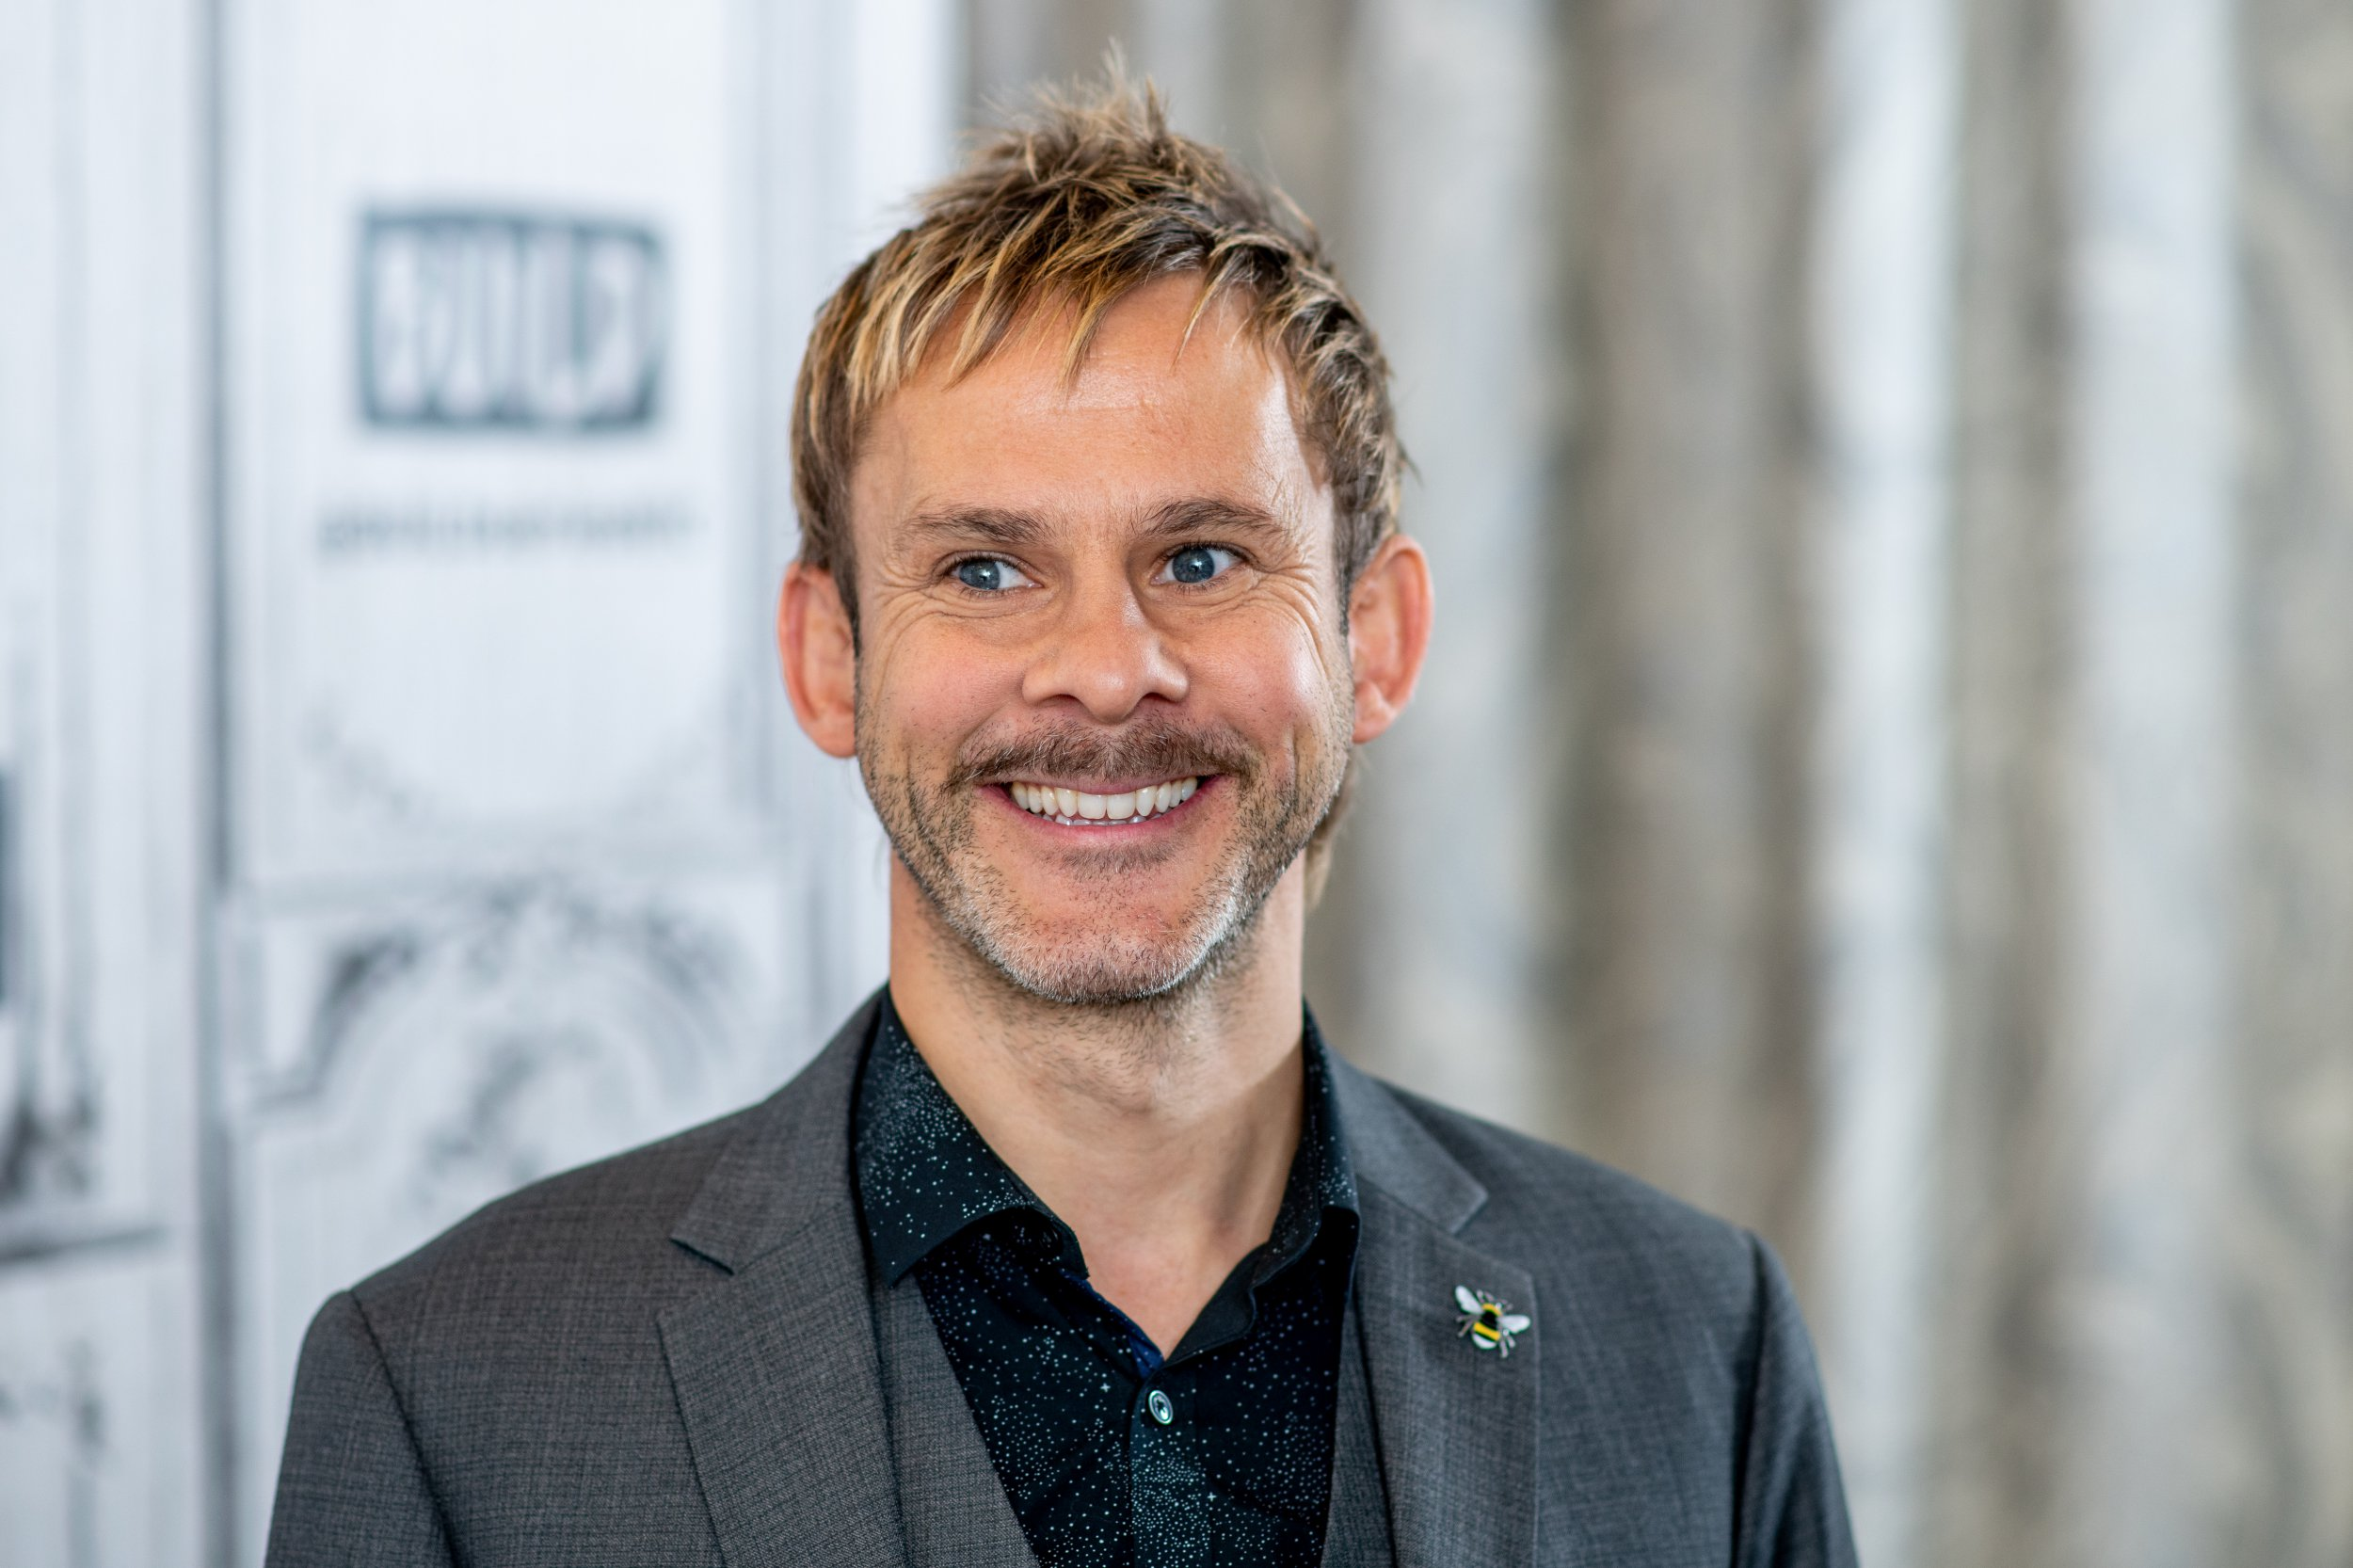 """NEW YORK, NY - MAY 22: Dominic Monaghan discusses """"100 Code"""" with the Build Series at Build Studio on May 22, 2018 in New York City. (Photo by Roy Rochlin/Getty Images)"""